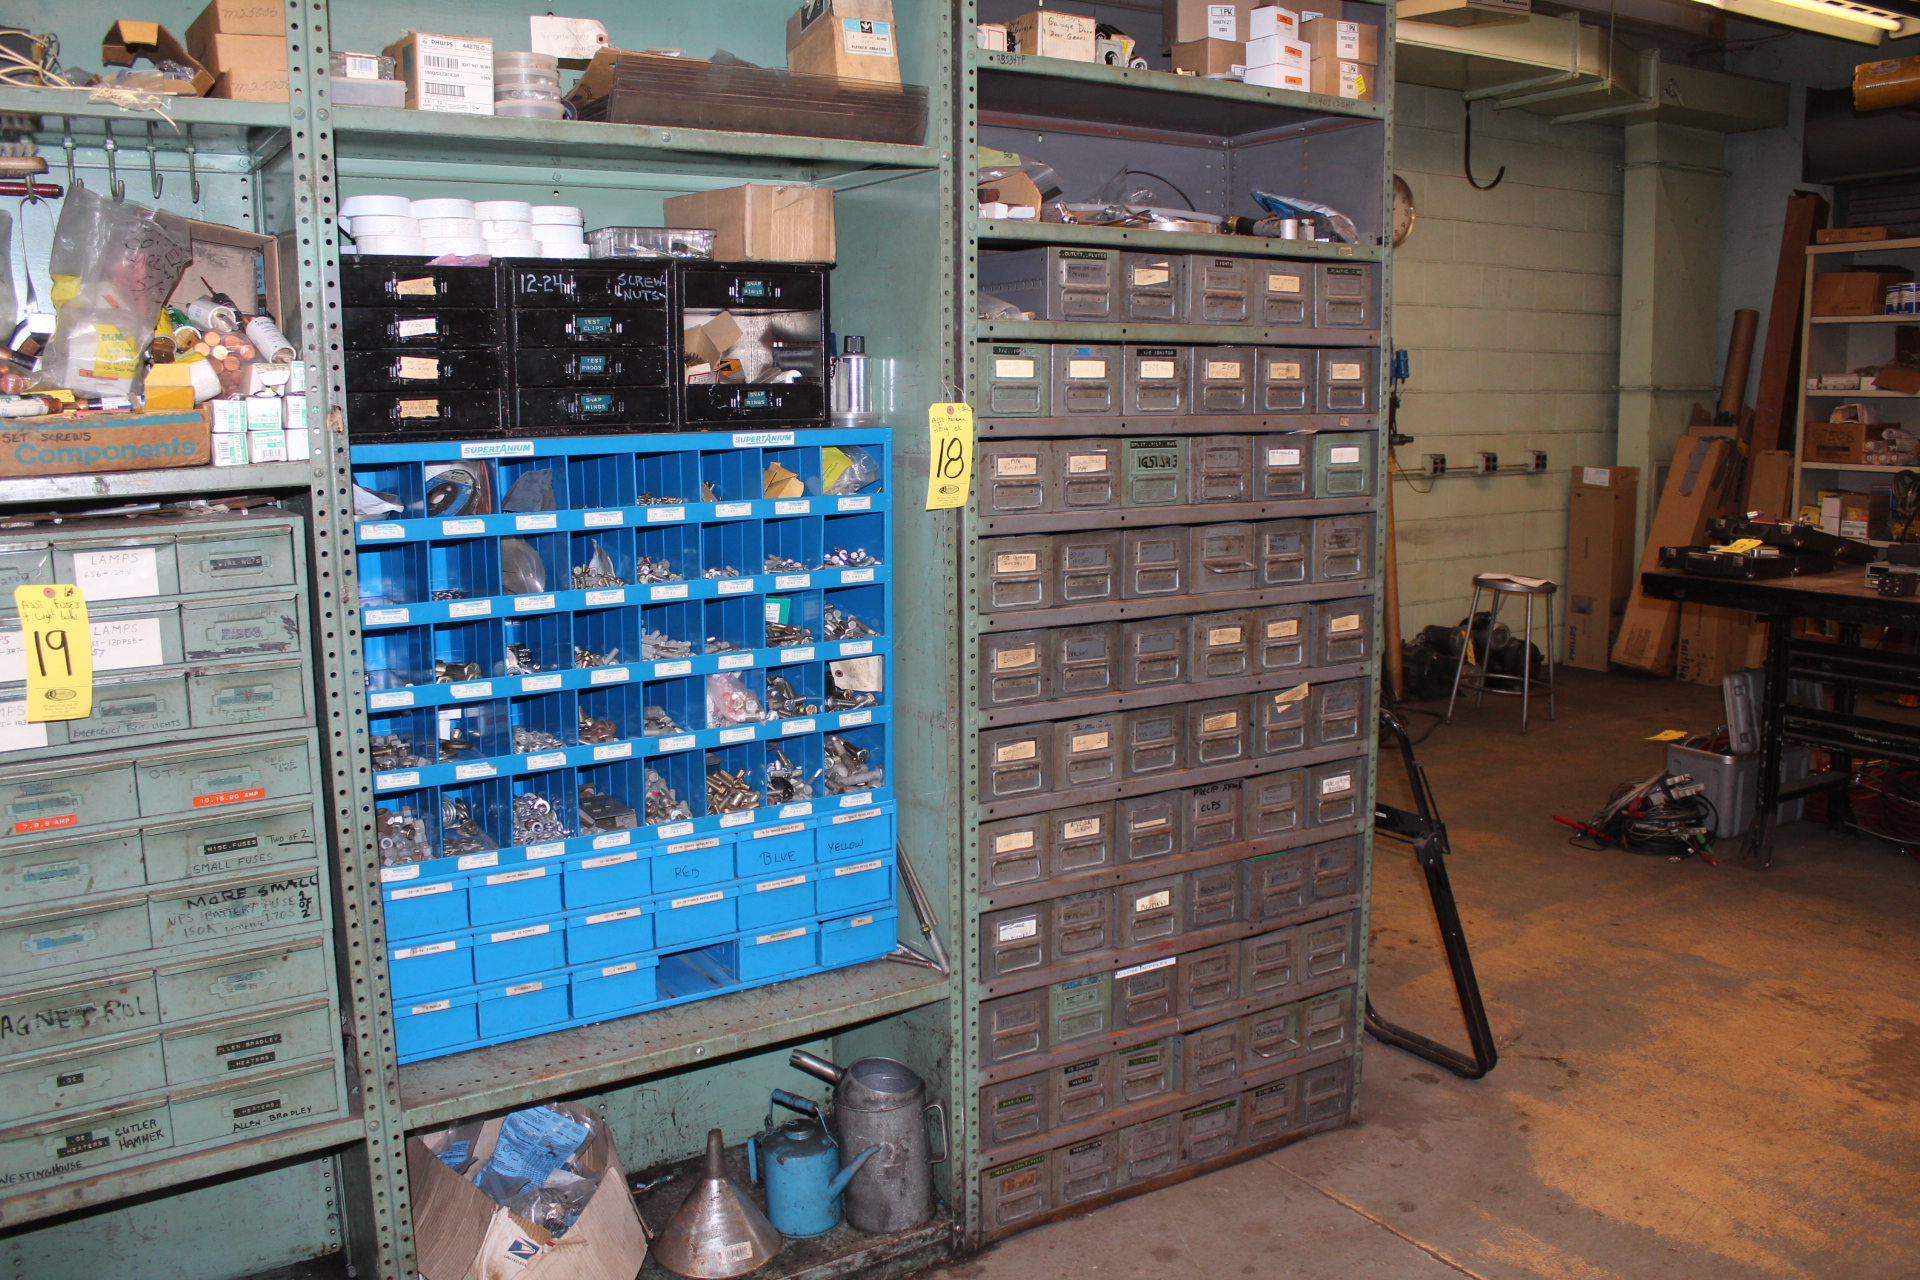 ASST. FITTINGS & HARDWARE & (2) SHELF UNITS W/ DRAWERS & SORTERS - Image 2 of 2